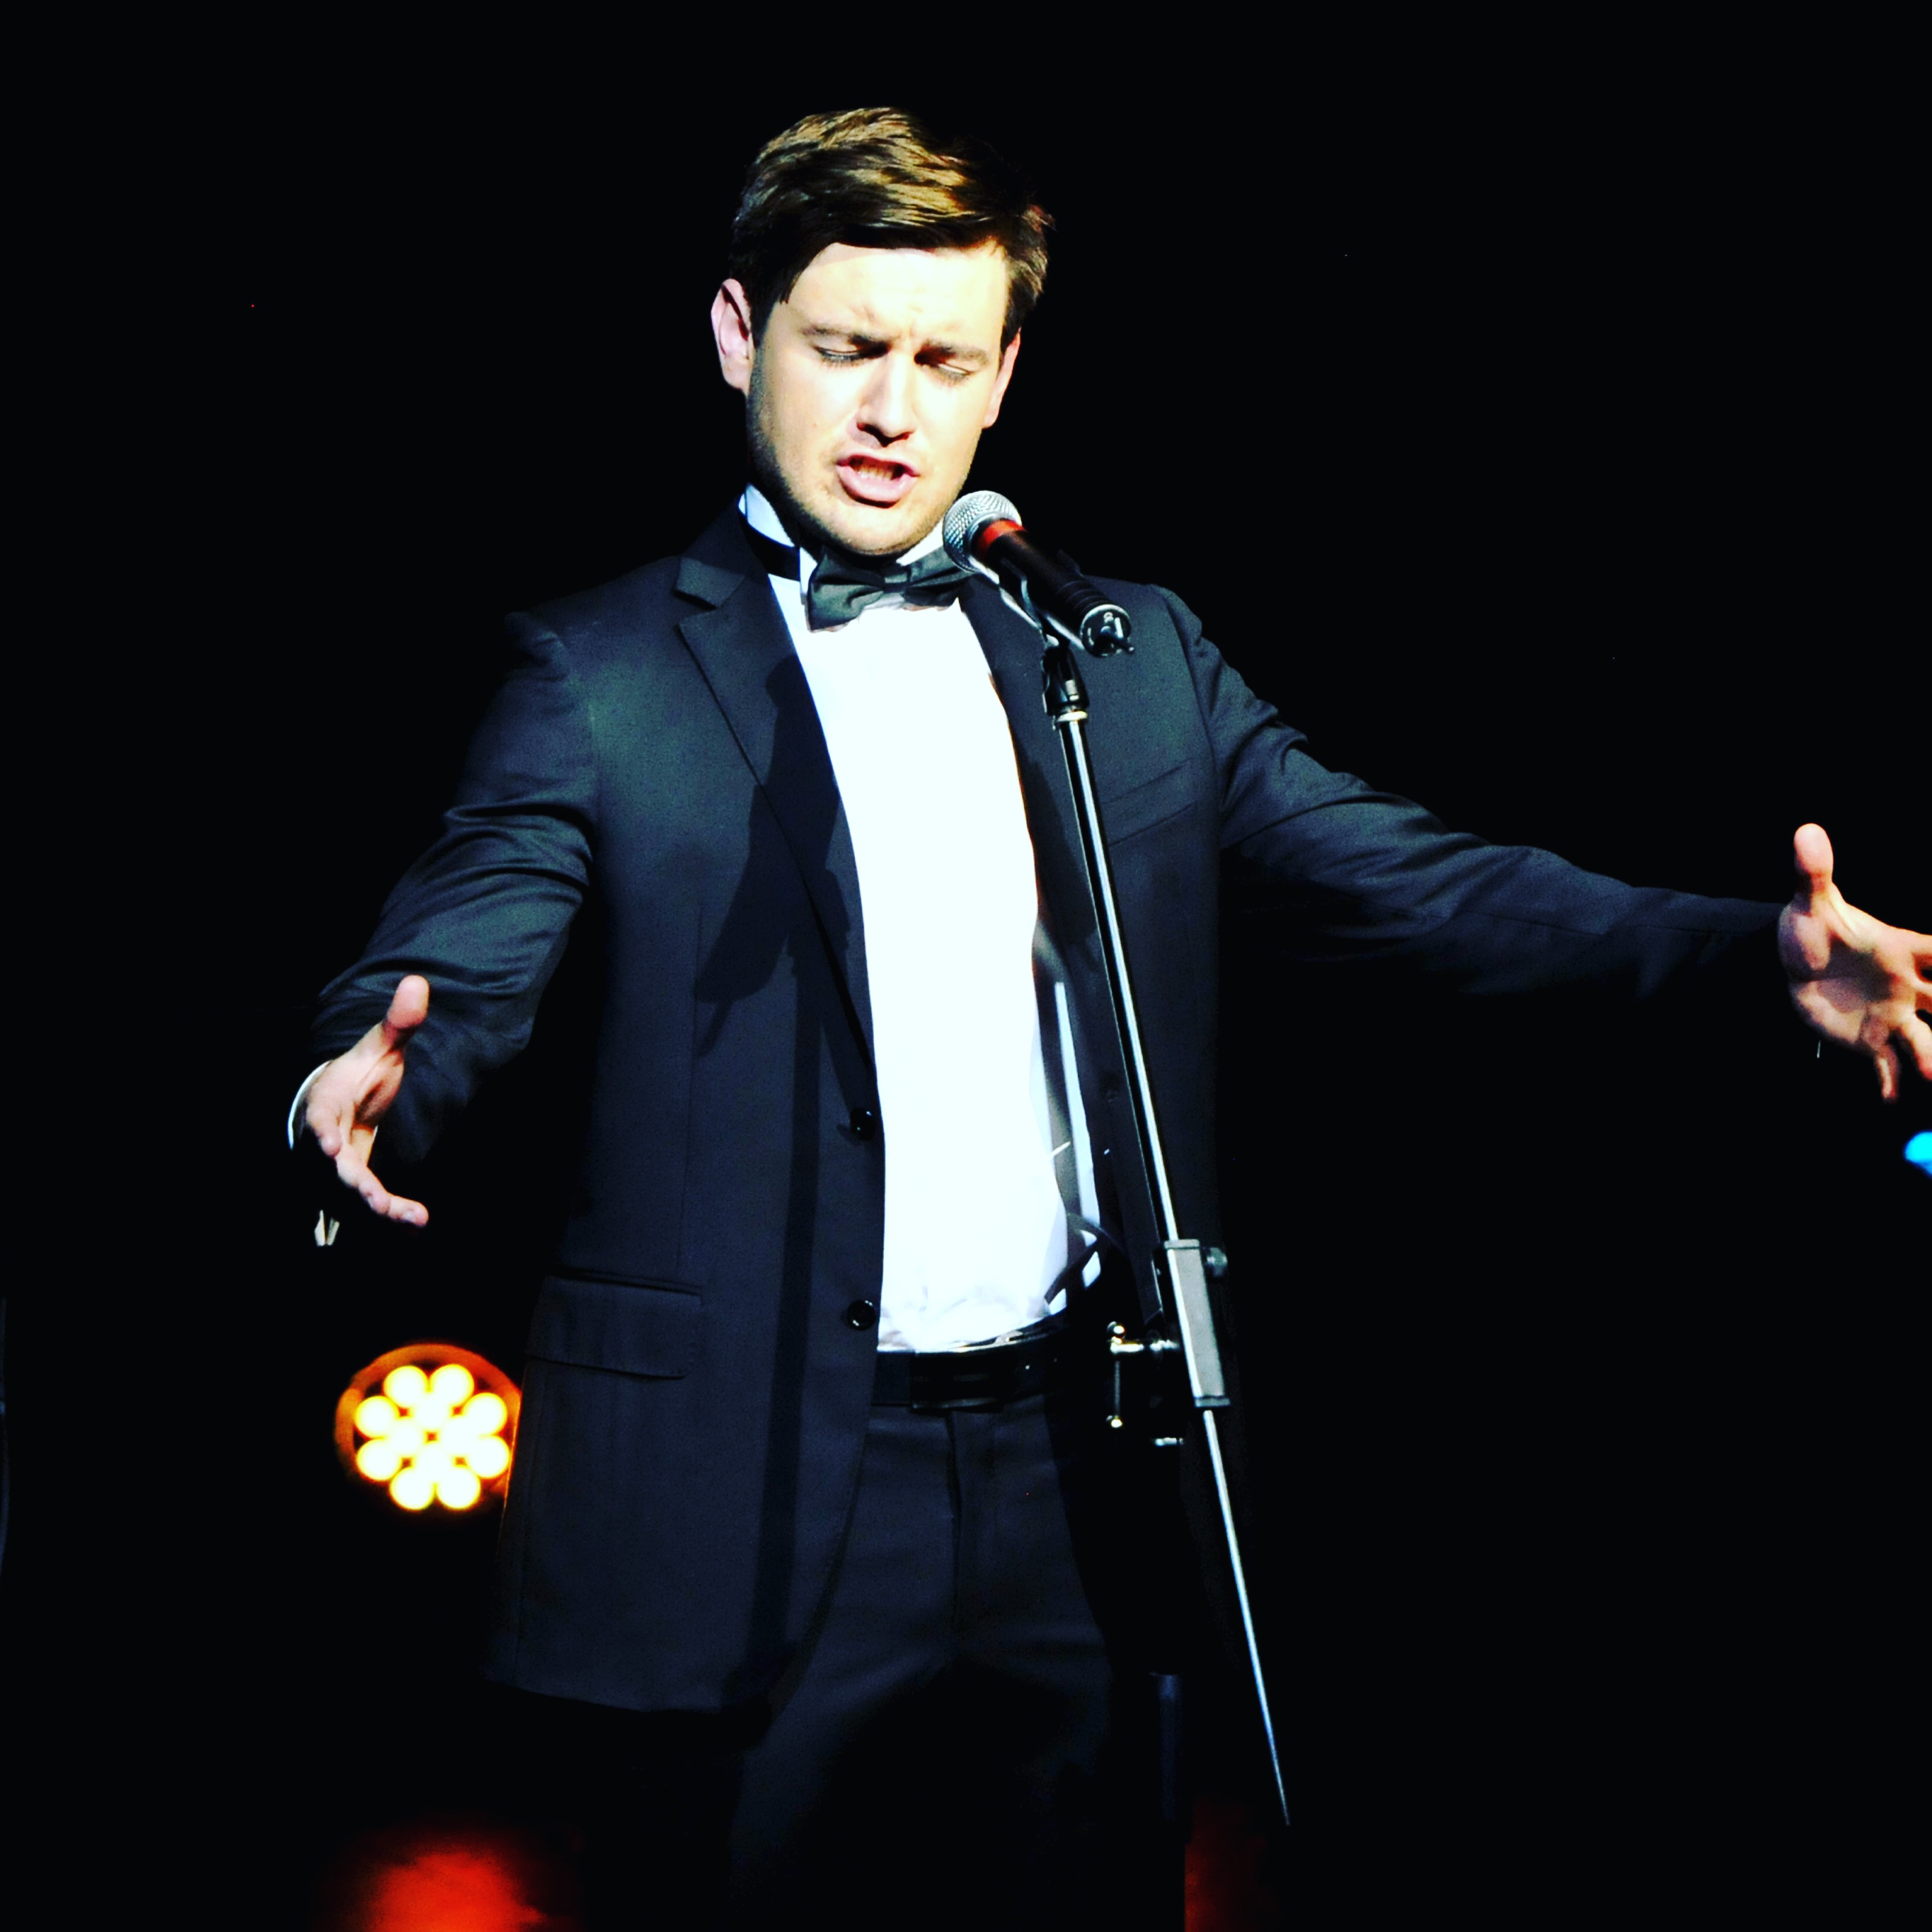 Emmet Cahill performing on stage